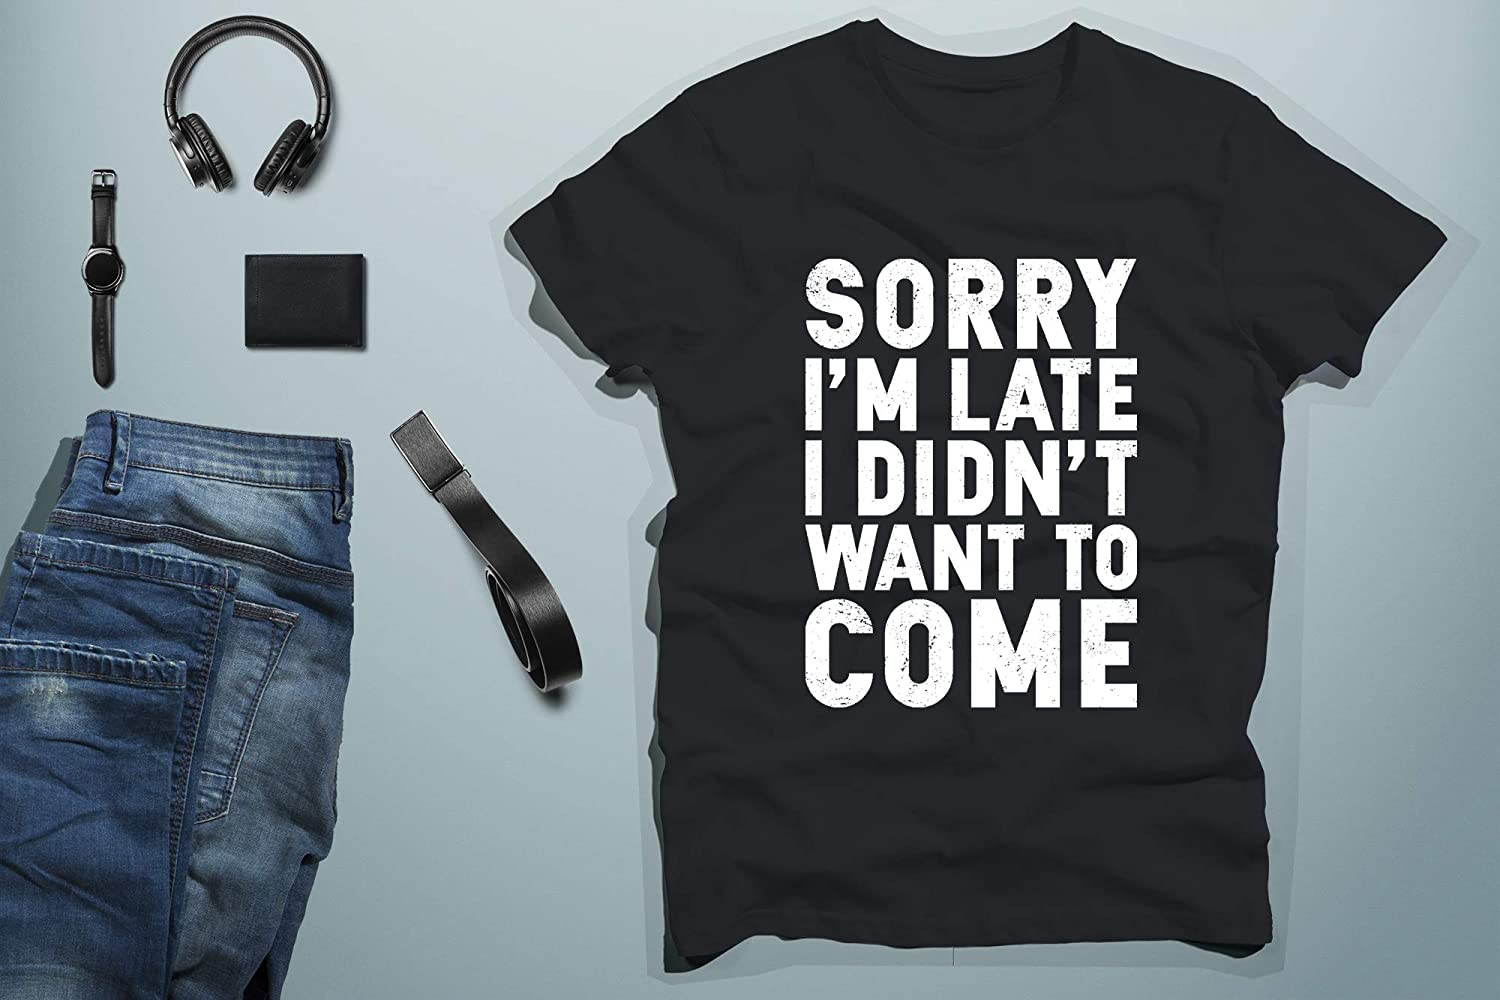 c32ec089 Crazy Bros Tees CBTWear Sorry I'm Late, I Didn't Want to Come - Funny  Sarcastic Graphic Tee - Office Humor Men T-Shirts: Amazon.ca: Clothing &  Accessories